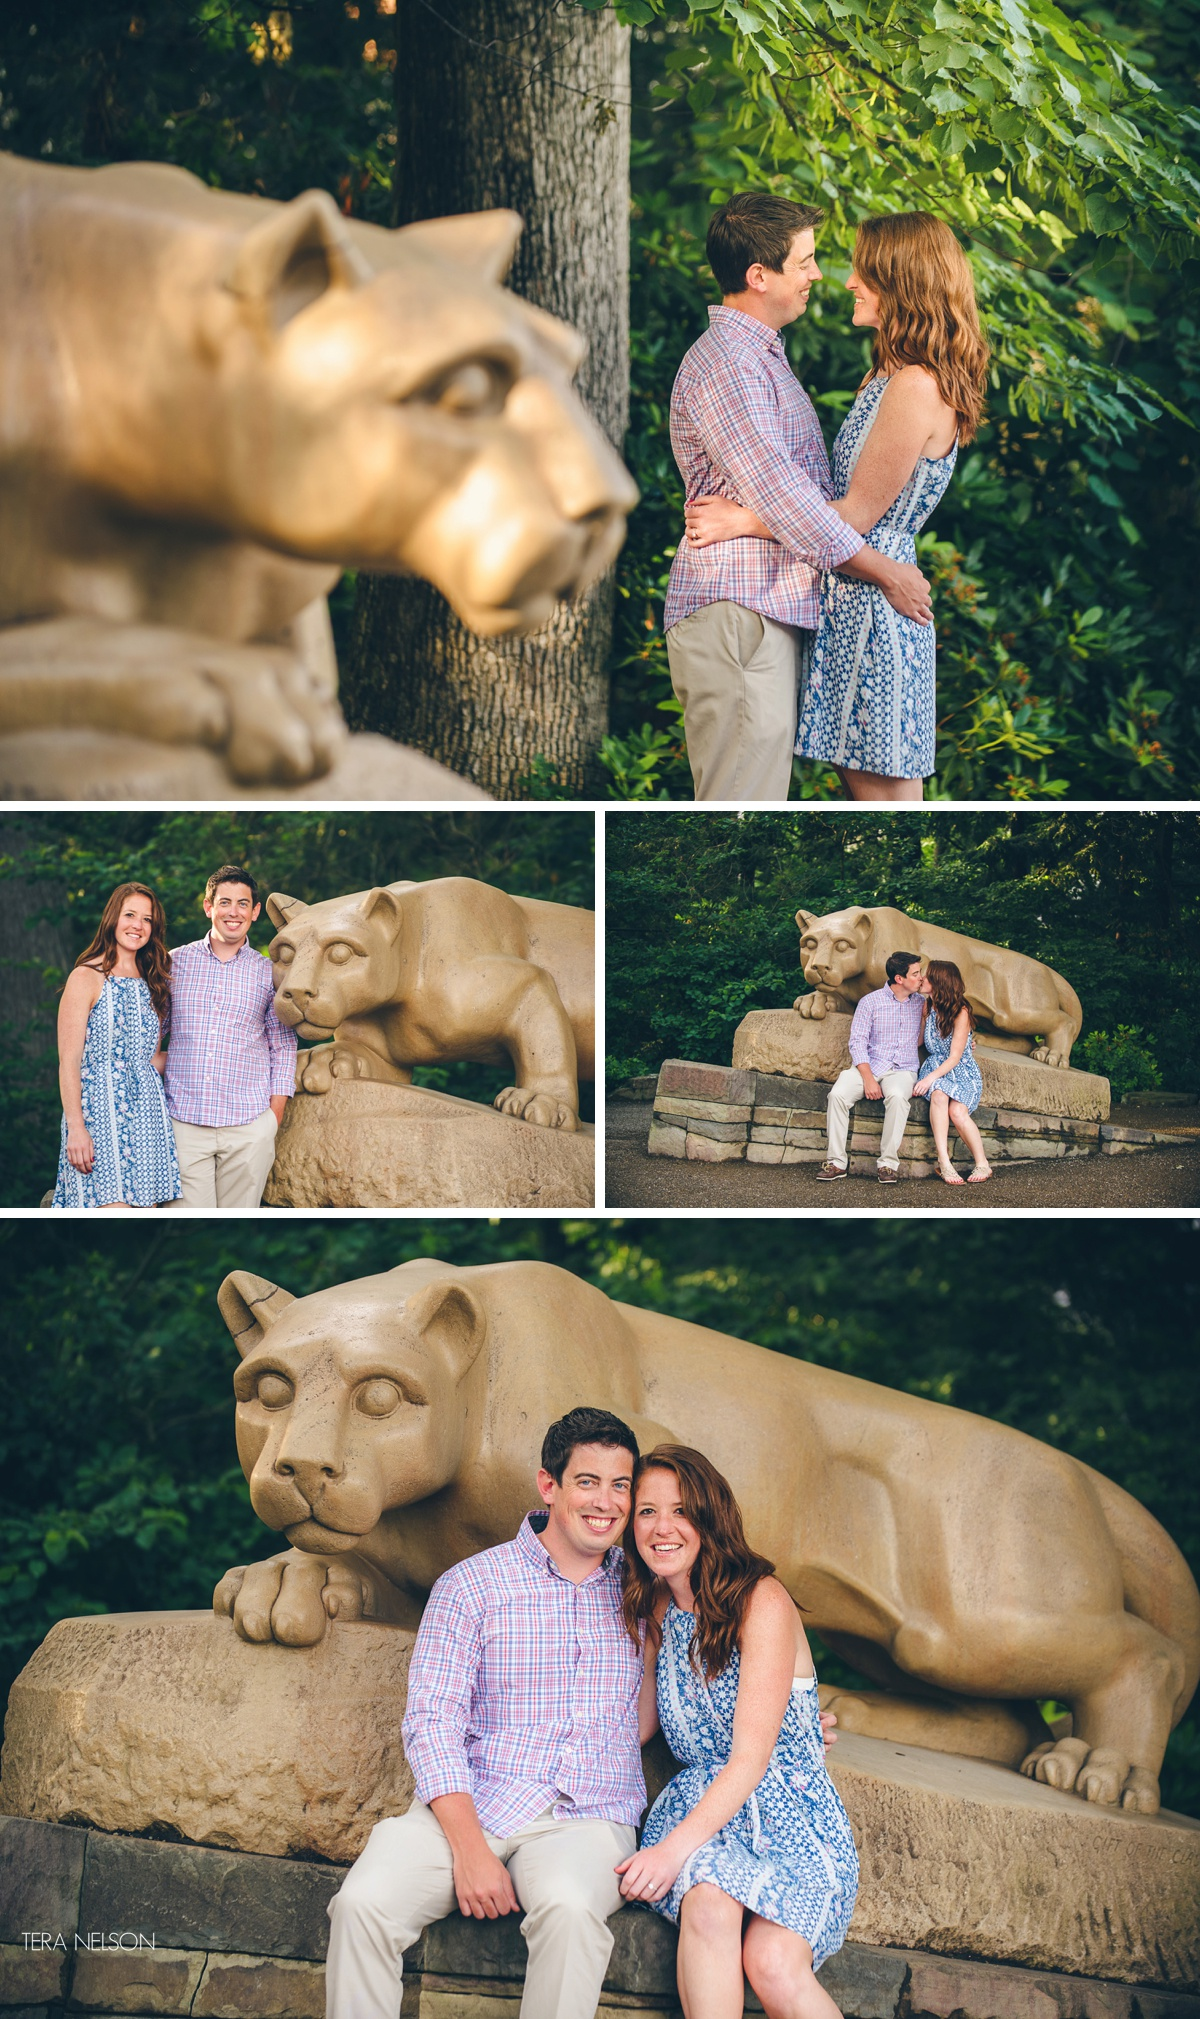 Penn_State_Old_Main_Wedding_Proposal_023